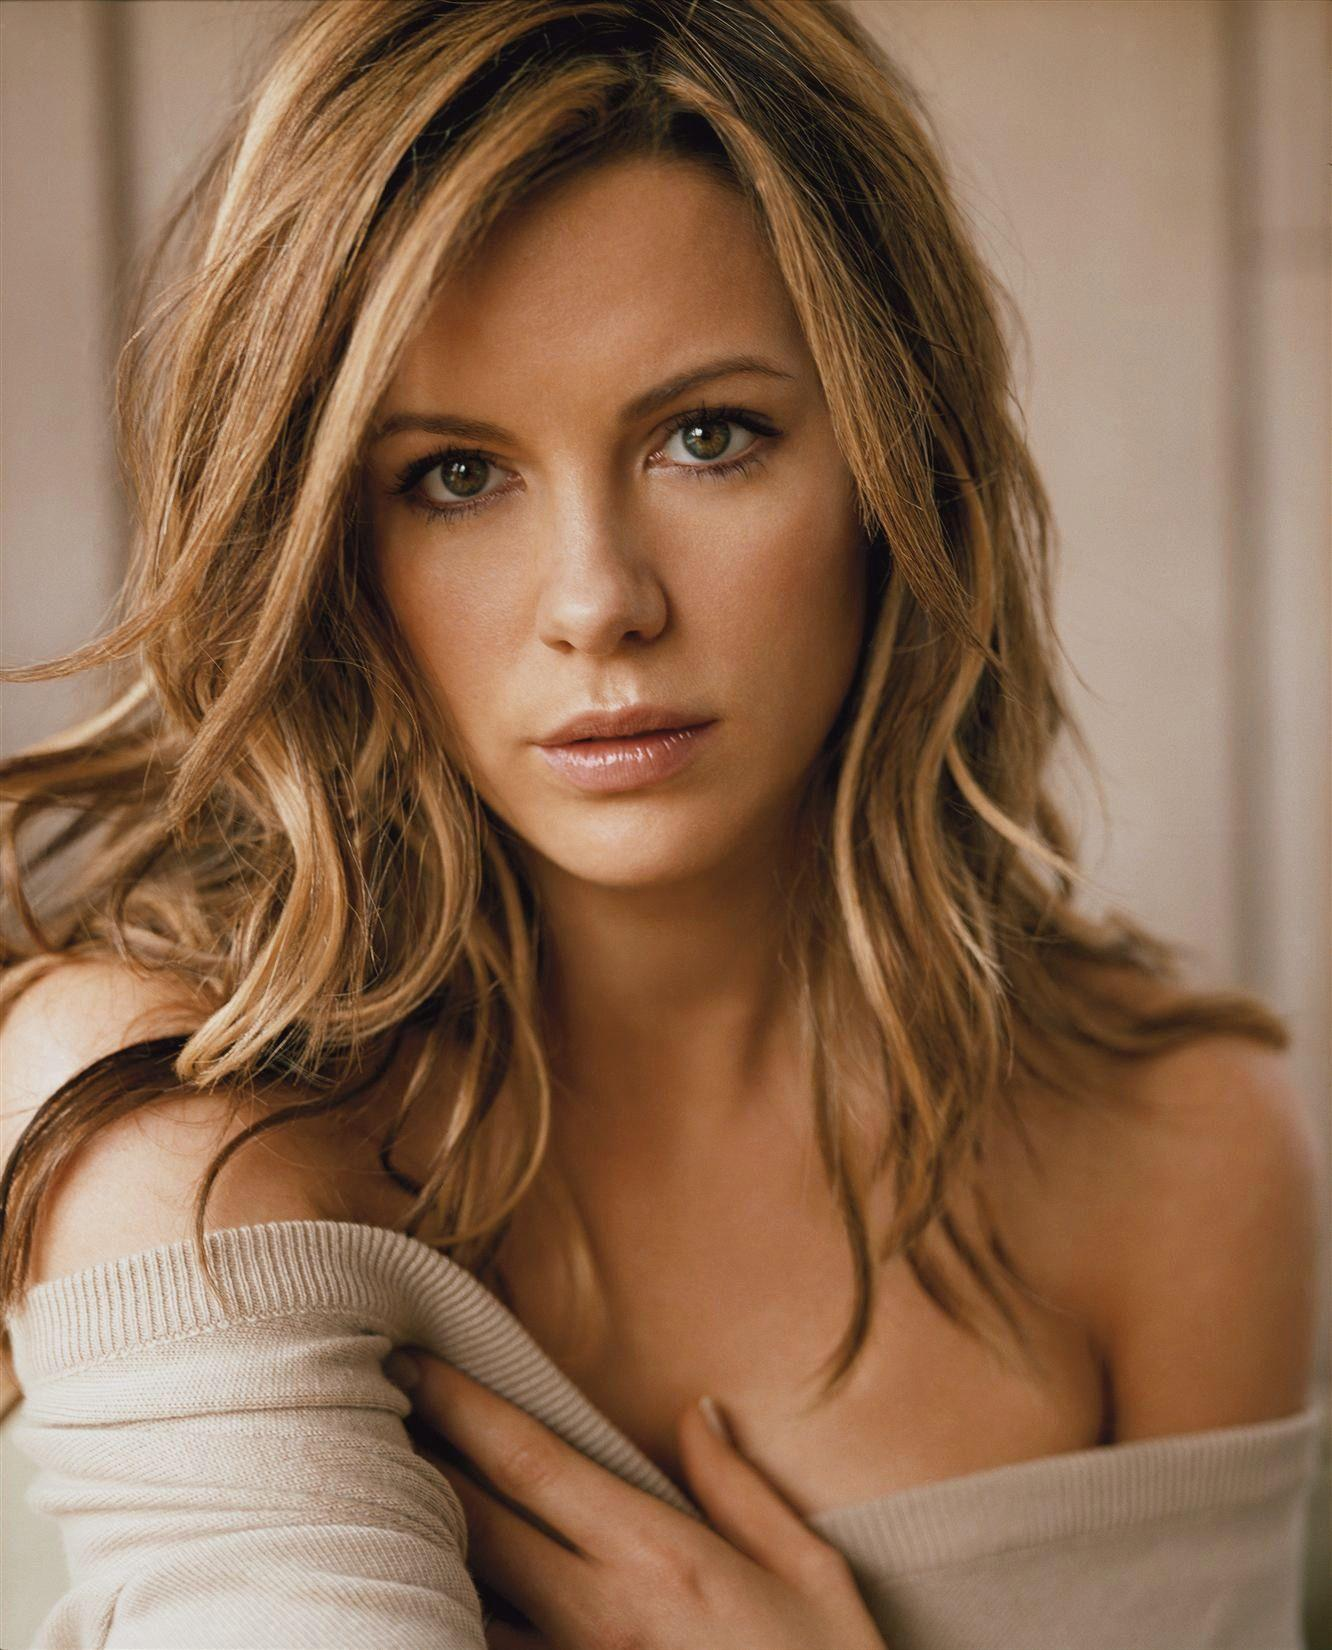 Kate Beckinsale Wallpapers HD Download